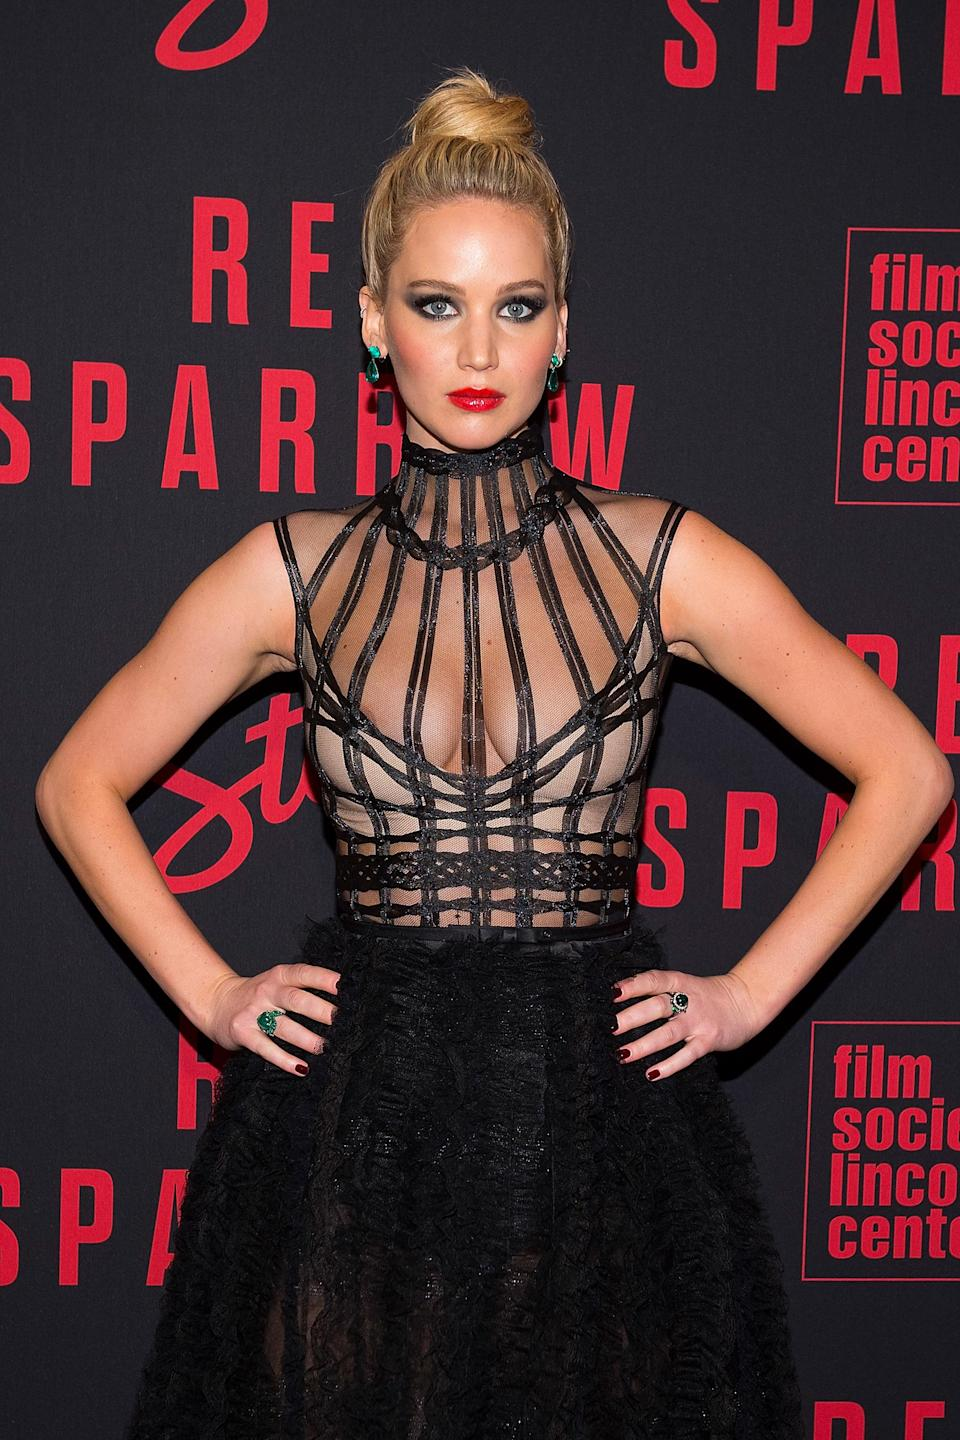 Jennifer Lawrence in New York to promote <em>Red Sparrow</em>. (Photo: Getty Images)